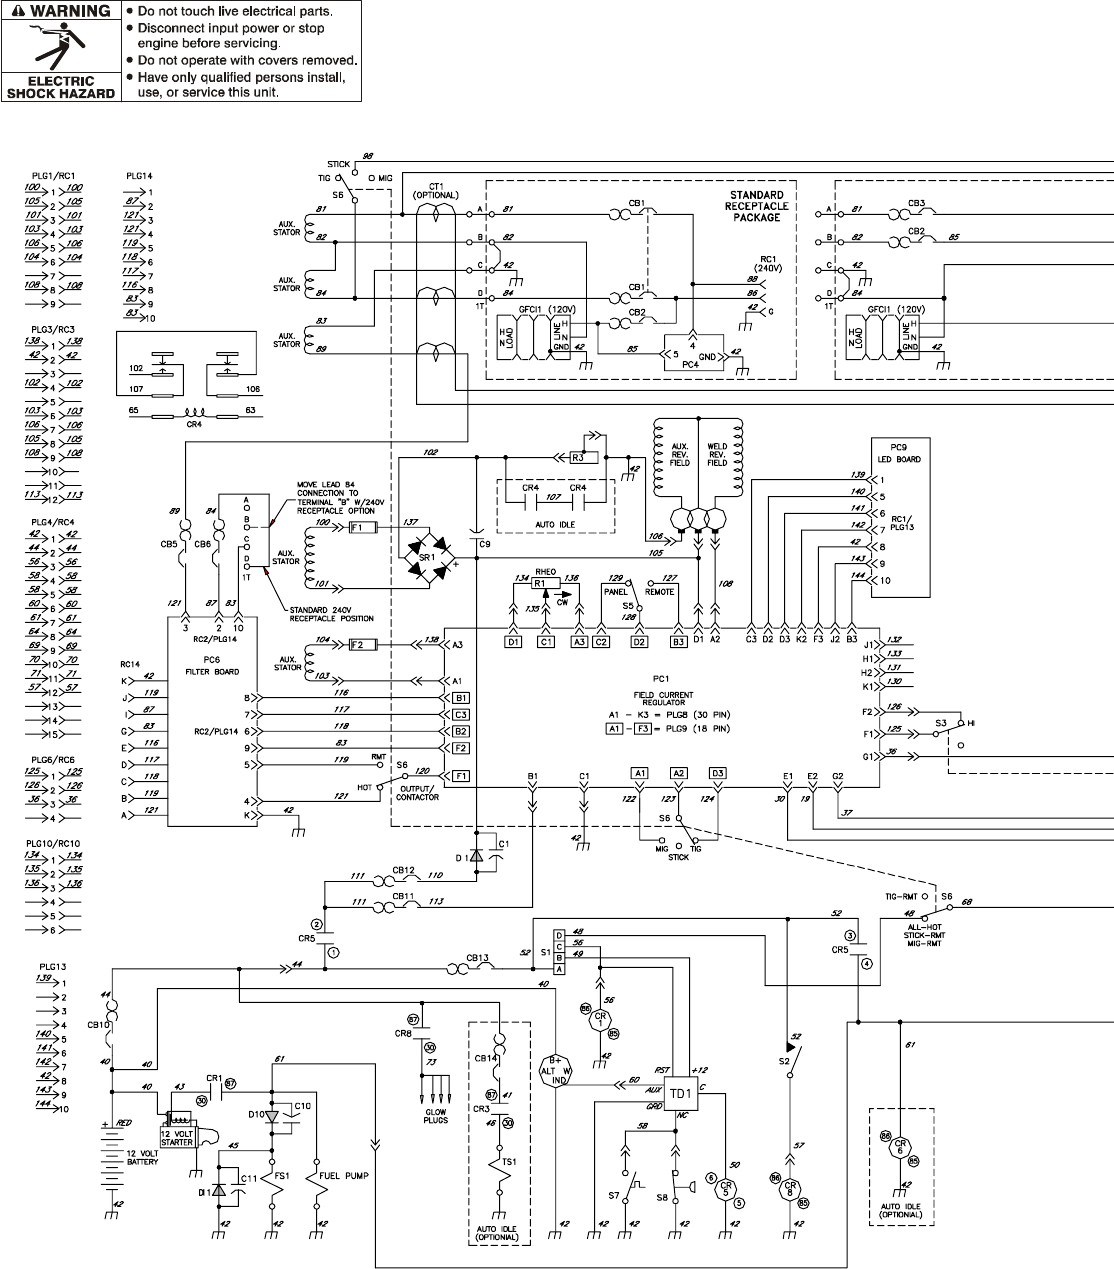 small resolution of  lincoln for sa 200 wiring schematic lincoln welder sa 200 wiring diagram lincoln sae wiring diagram